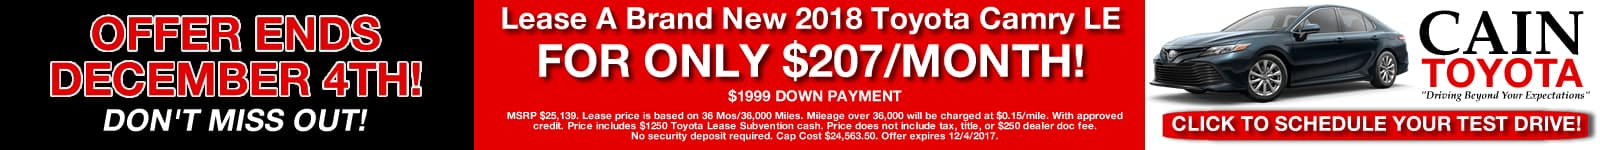 CAMRY LEASE SPECIAL CAIN TOYOTA NORTH CANTON STARK CO OHIO